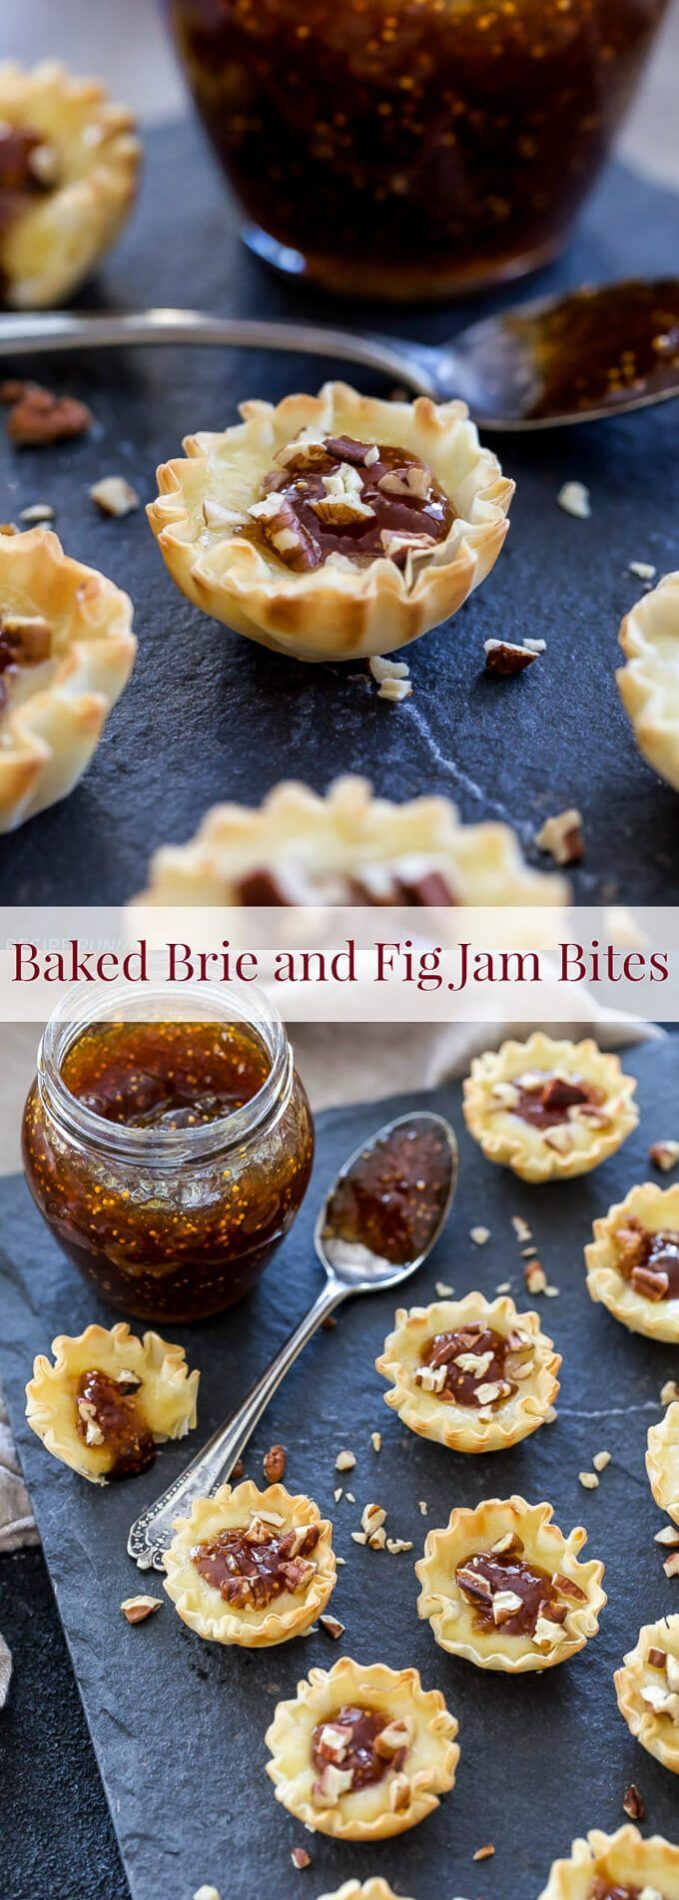 Baked Brie and Fig Jam Bites. Only 4 ingredients and 10 minutes to make this stress free, sweet and savory bite!